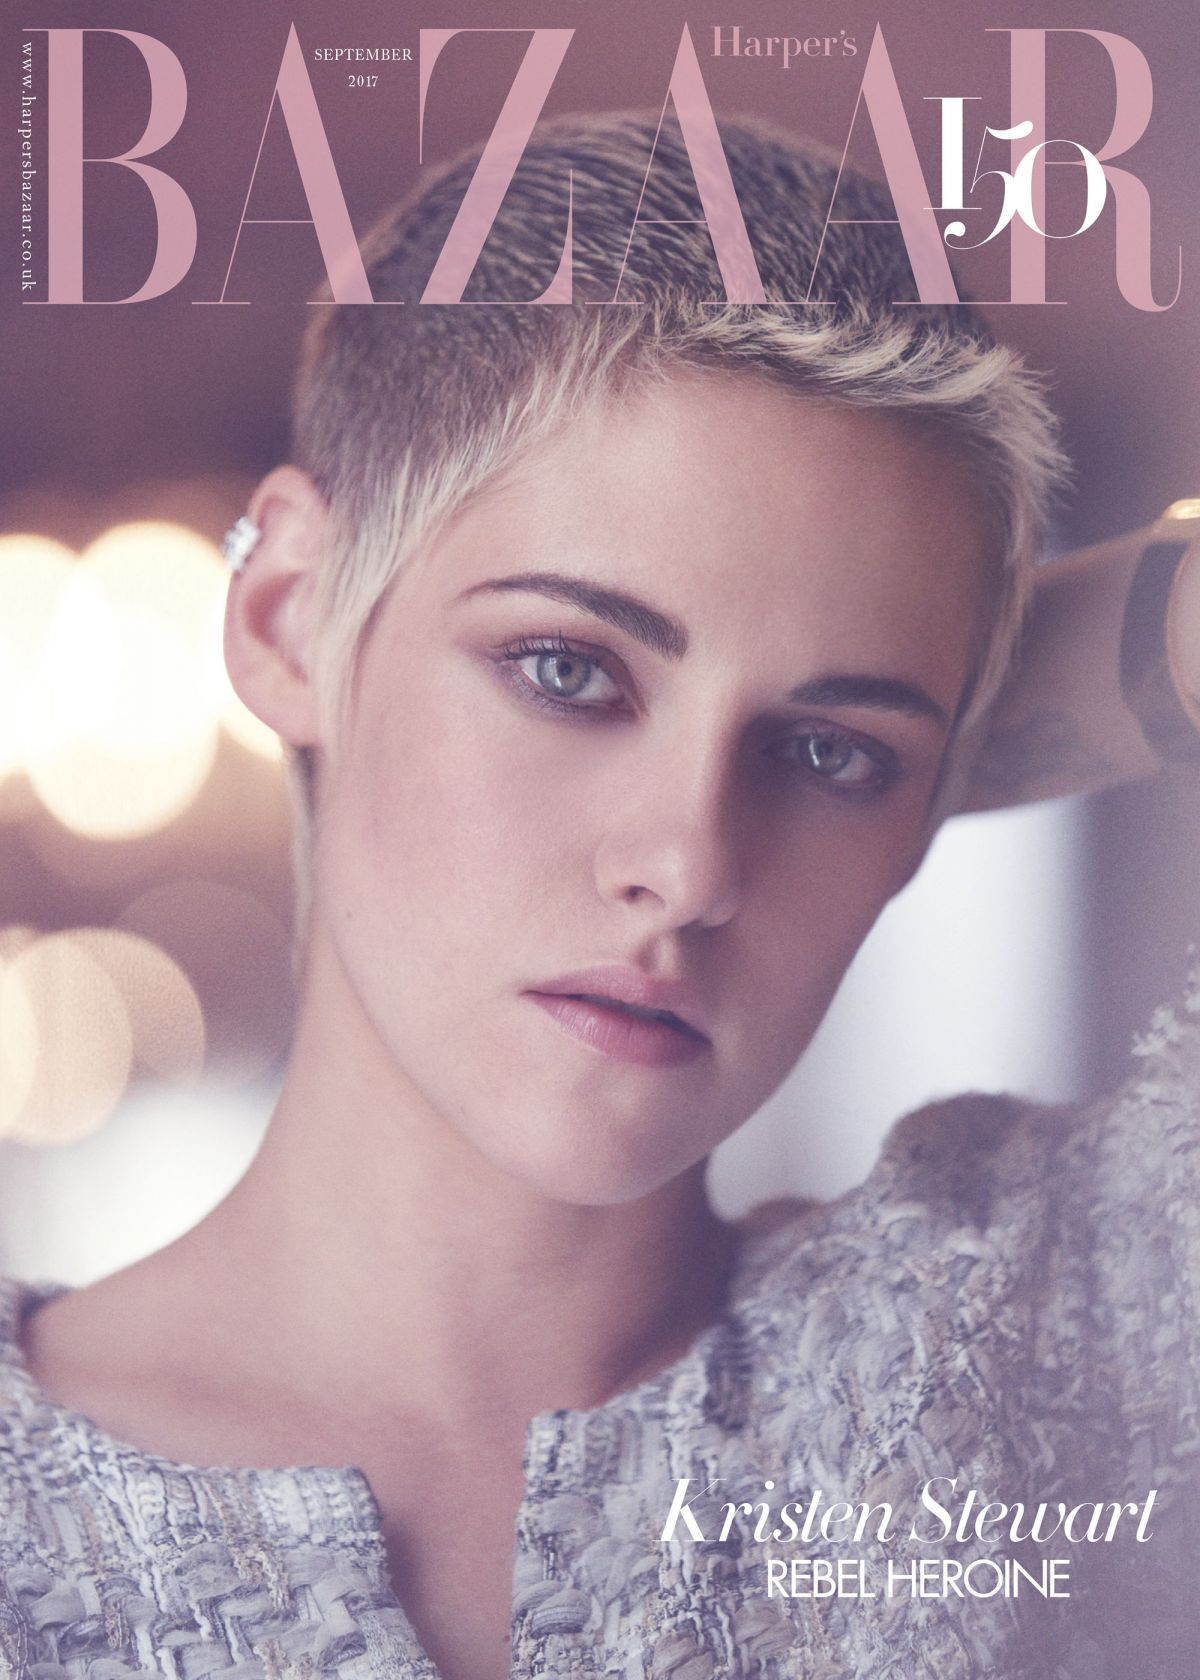 Kristen Stewart For Harper's Bazaar UK September 2017   kristen-stewart-for-harper-s-bazaar-uk-september-2017_1